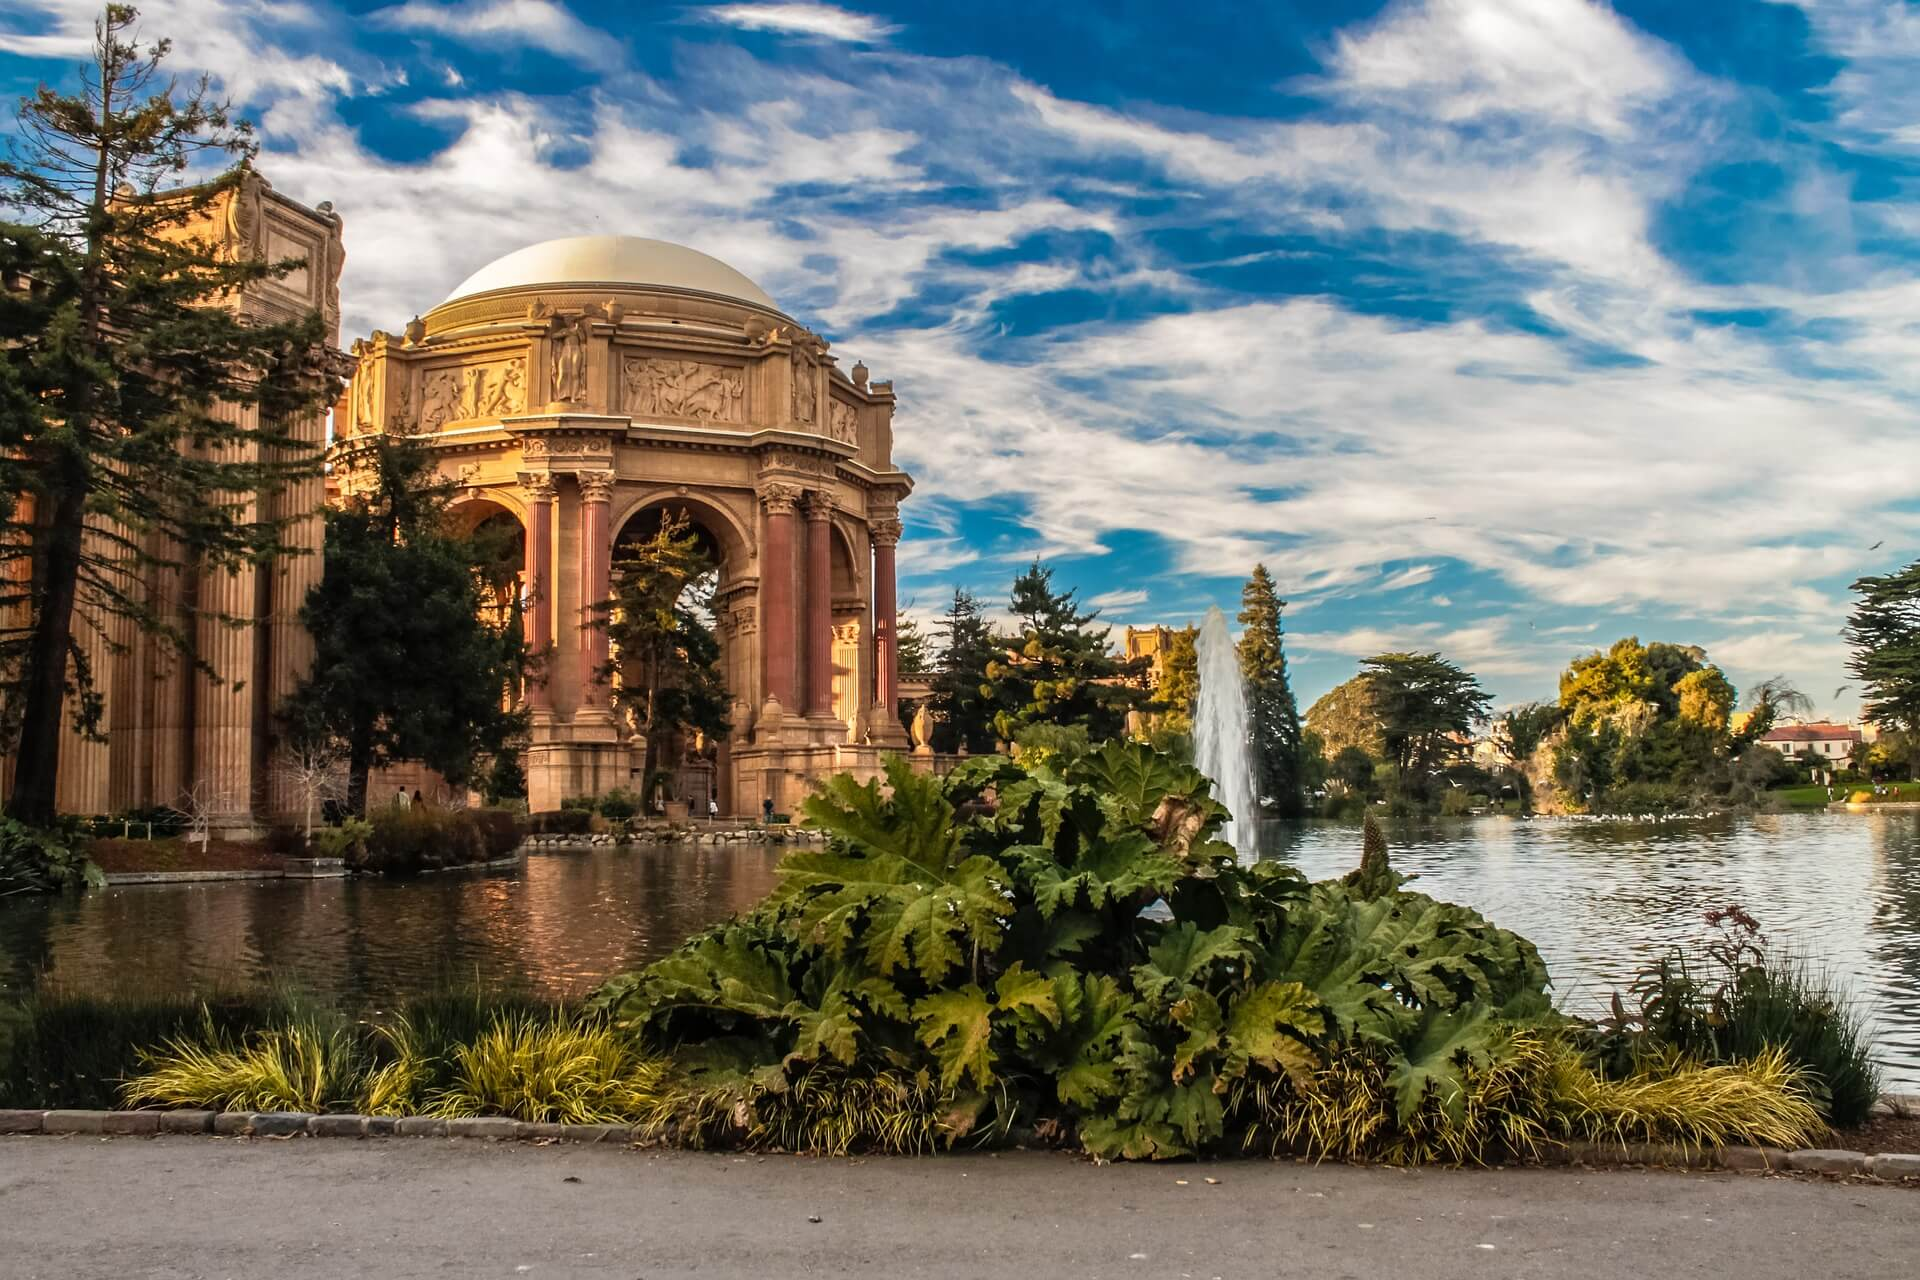 What is the most famous park in San Francisco?